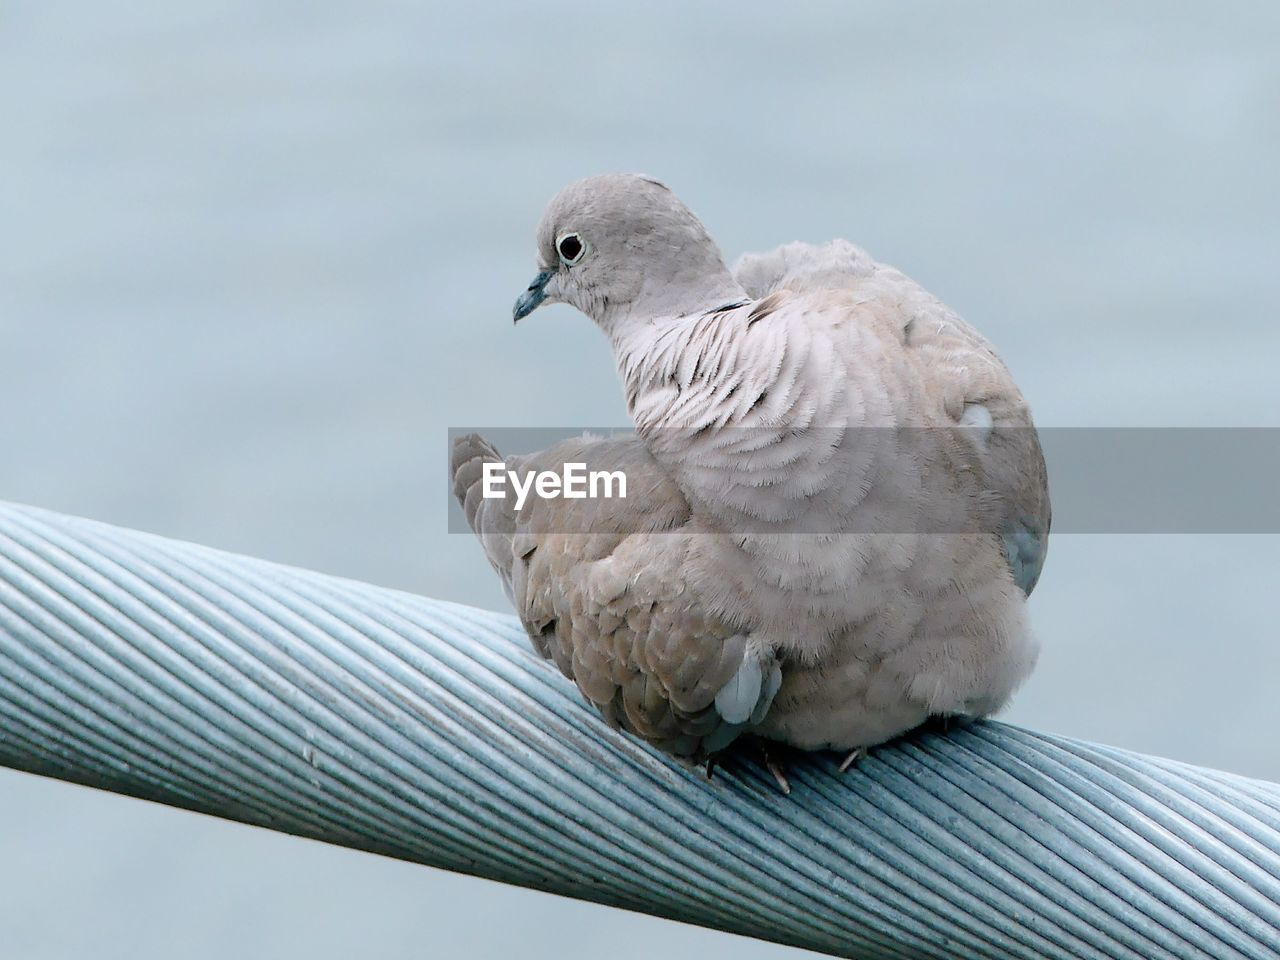 bird, animal themes, animal, animals in the wild, animal wildlife, vertebrate, one animal, focus on foreground, perching, no people, day, close-up, mourning dove, nature, dove - bird, outdoors, gray, metal, pigeon, low angle view